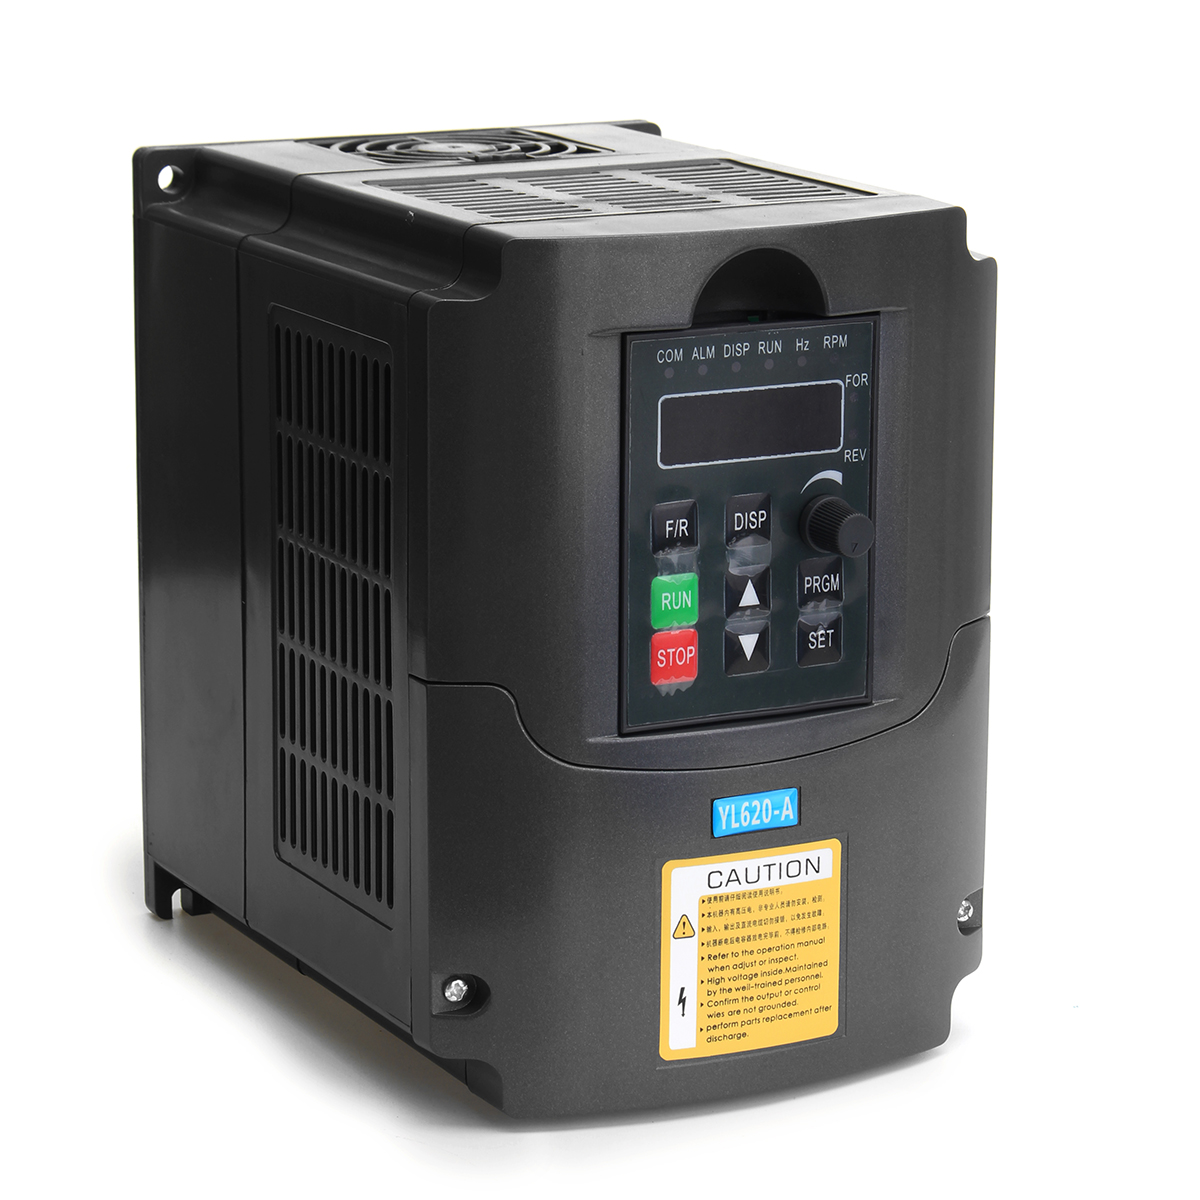 1.5kw 110V AC Variable Frequency Inverter Converter 3 Phase Output Built-in PLC Single Phase Space Voltage Vector Modulation wolfgang schleich p quantum optics in phase space isbn 9783527635009